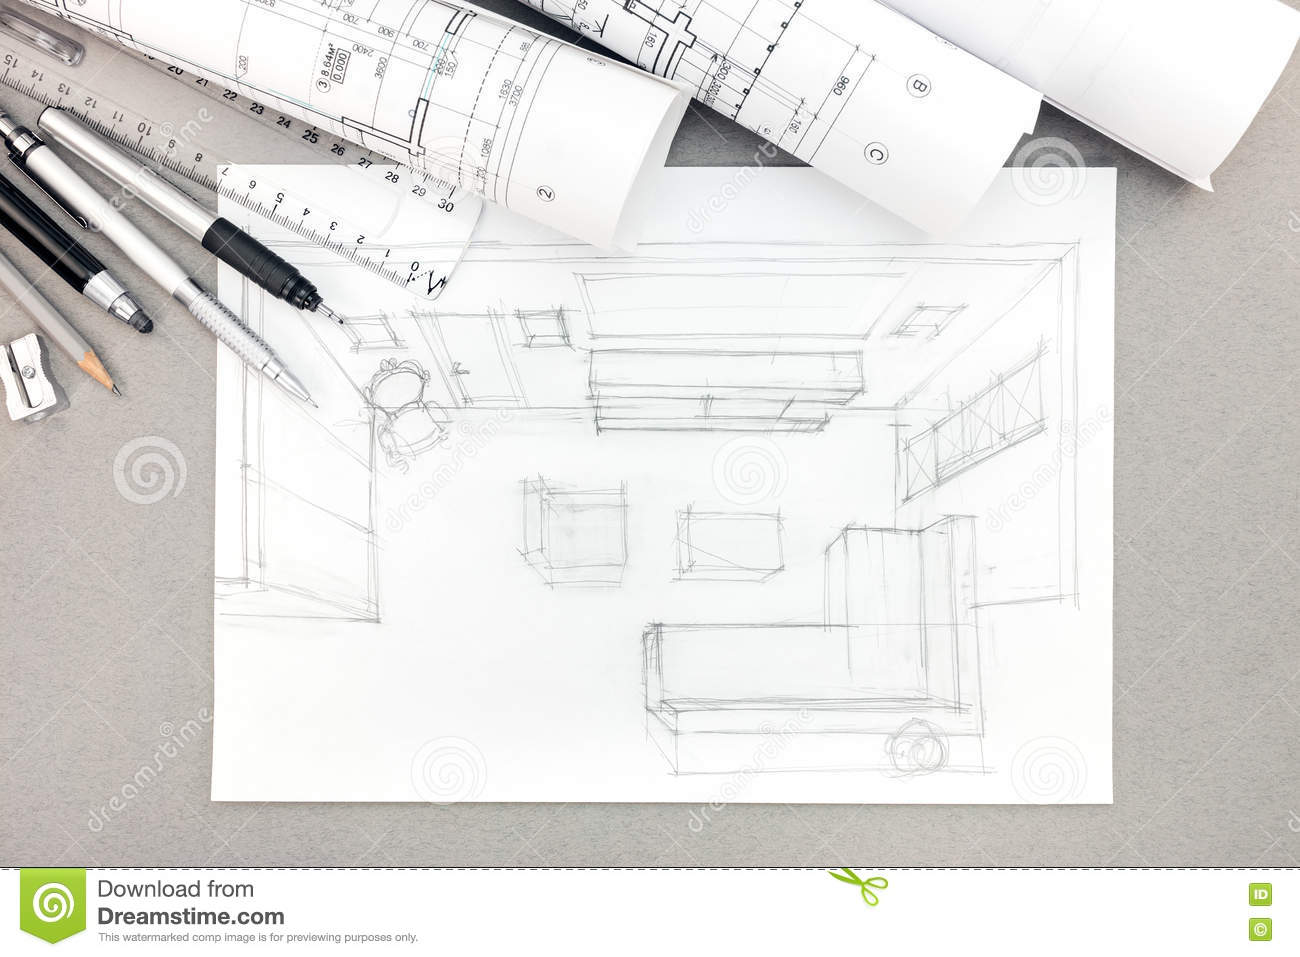 Graphical Sketch By Pencil Of Interior Living Room With Drawing ...